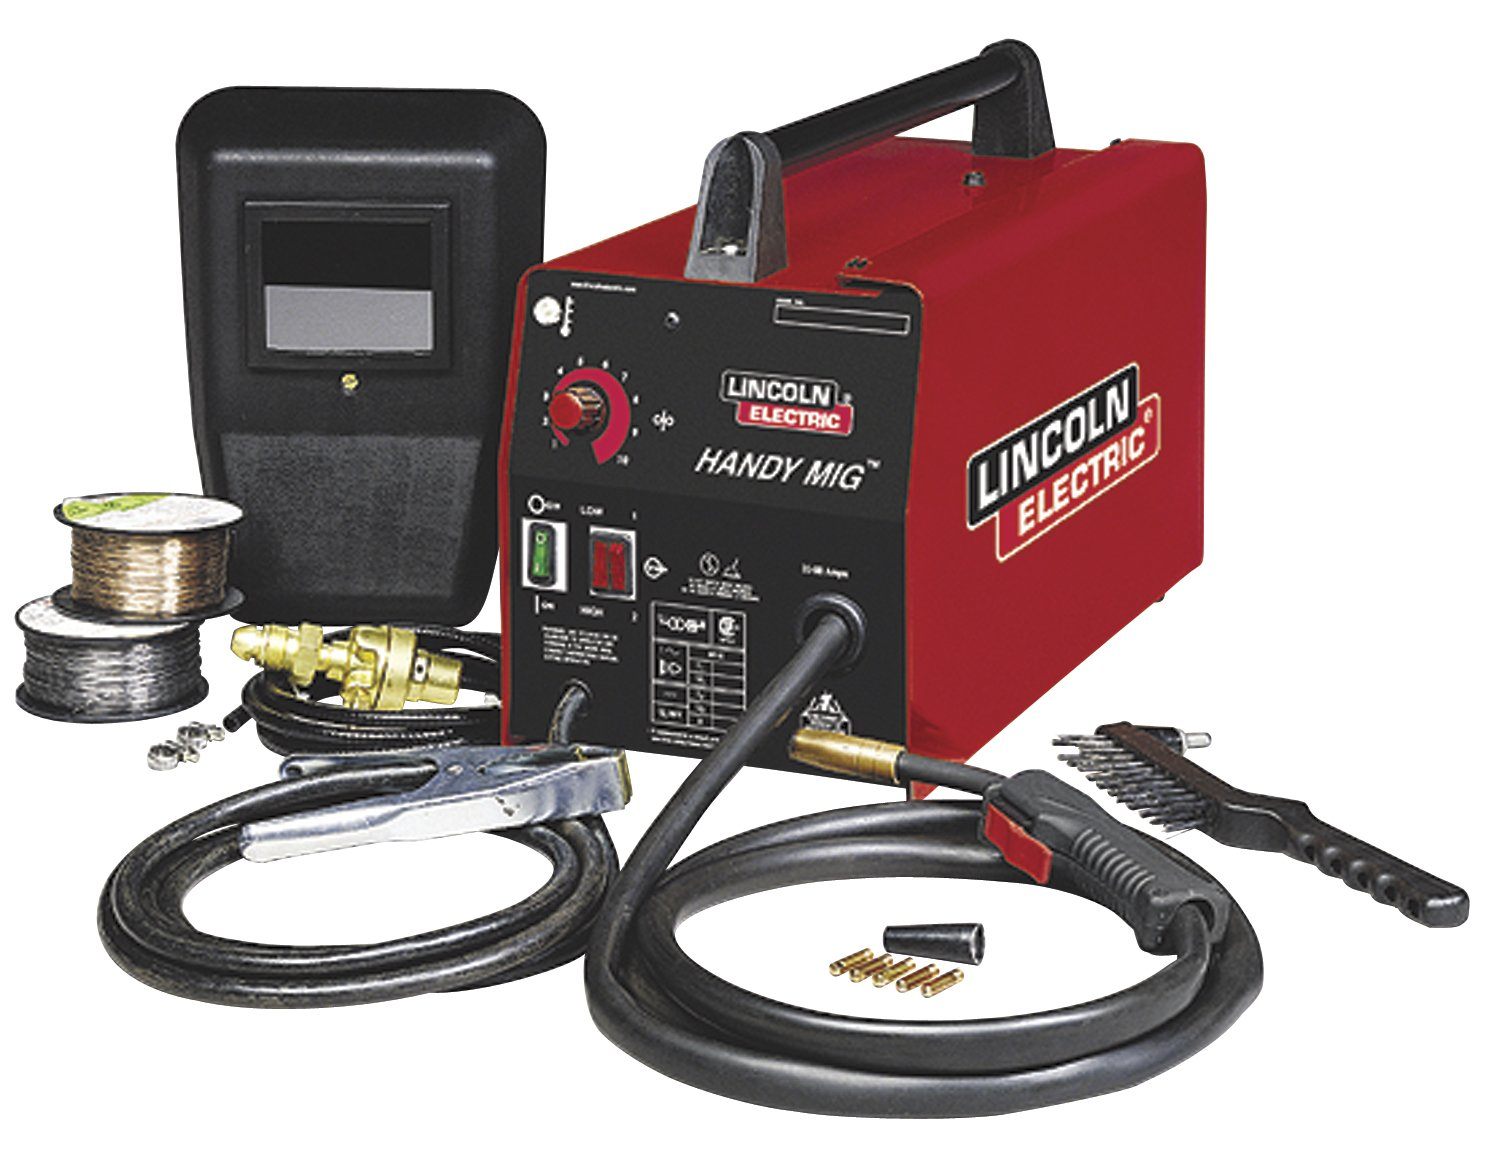 Lincoln Electric K2185-1 Handy MIG Welder: Mig Welding Equipment:  Amazon.com: Industrial & Scientific